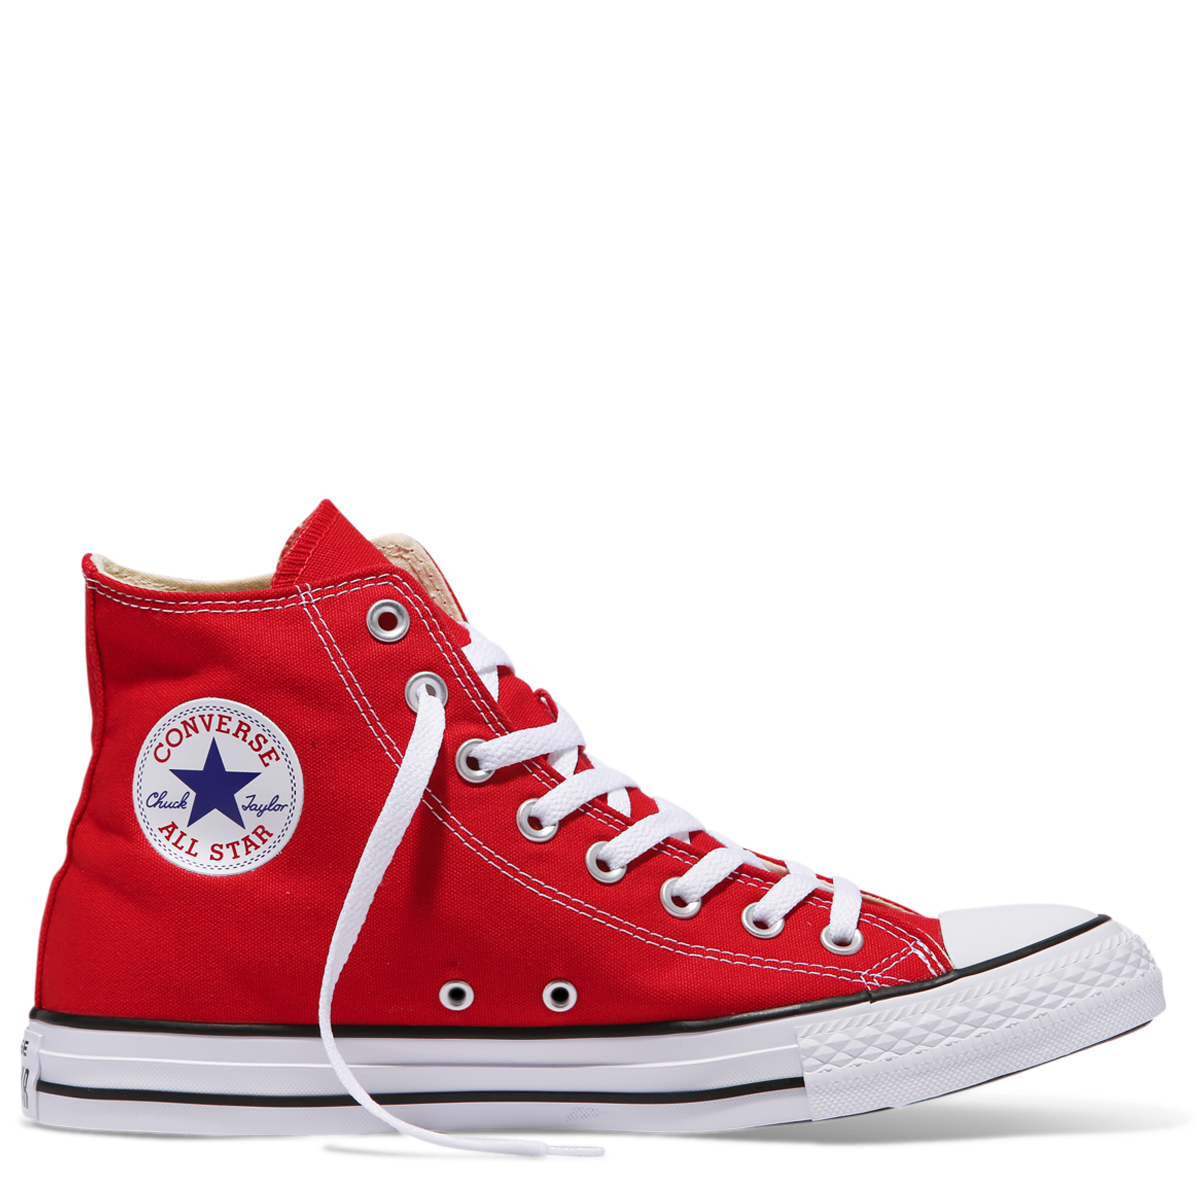 Chuck Taylor All Star Classic Colour High Top Red | Converse ...